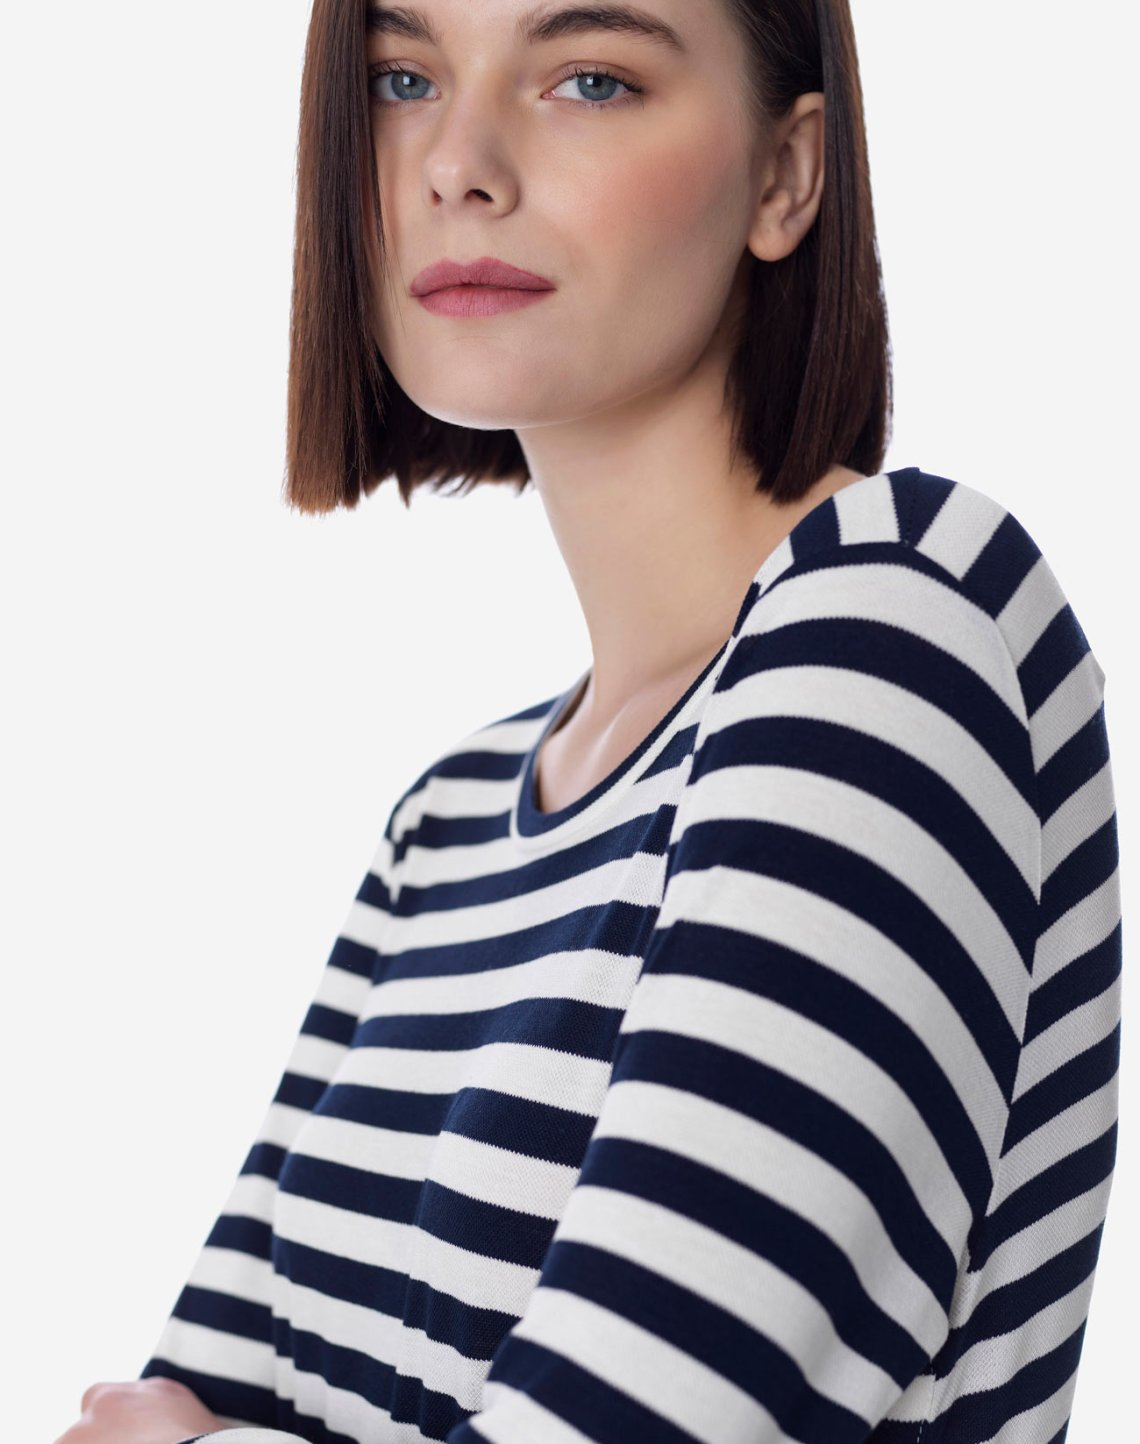 Striped top with ruffle hem